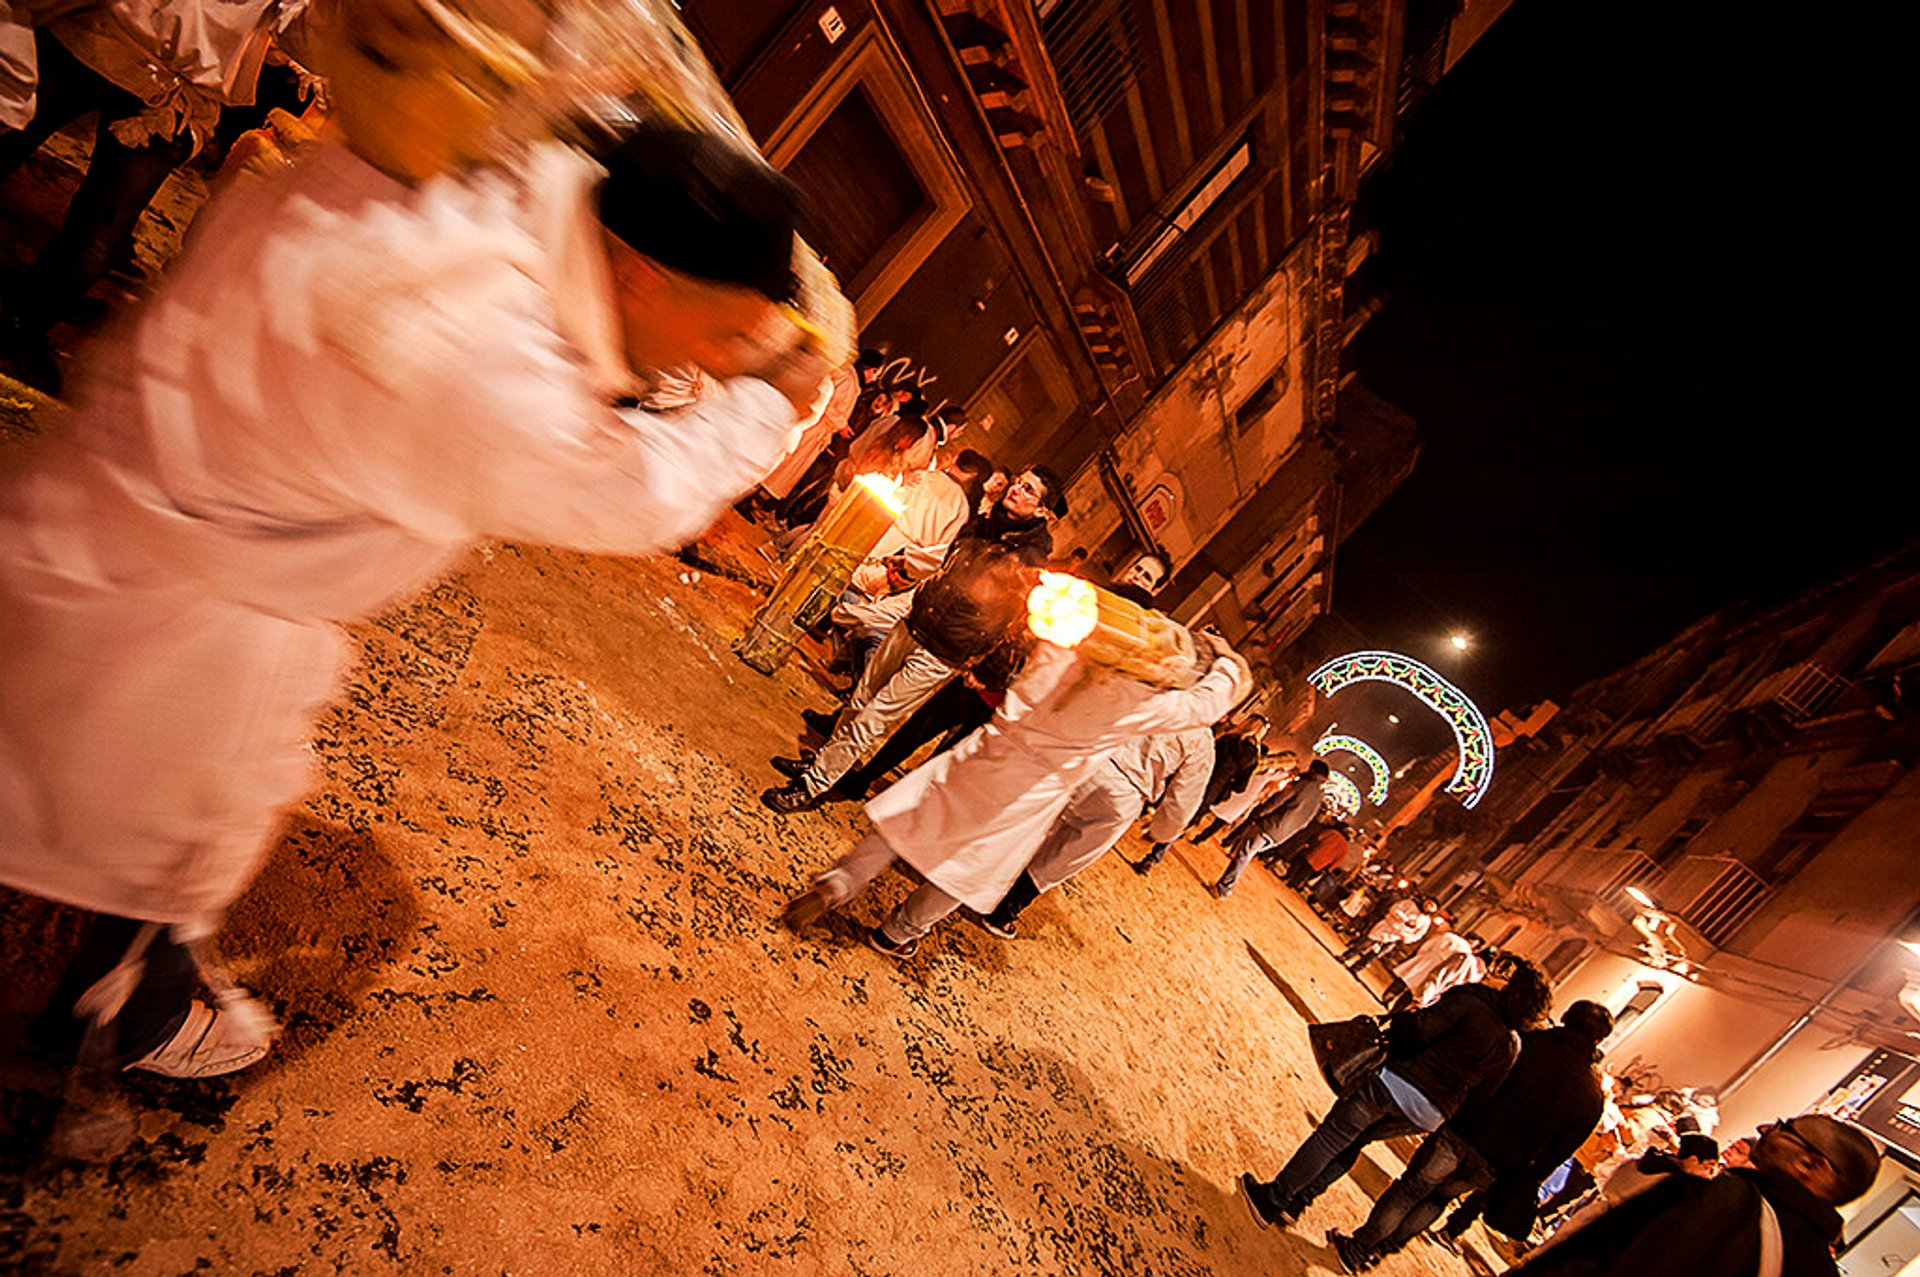 Best time to see Saint Agata Festival in Sicily 2019